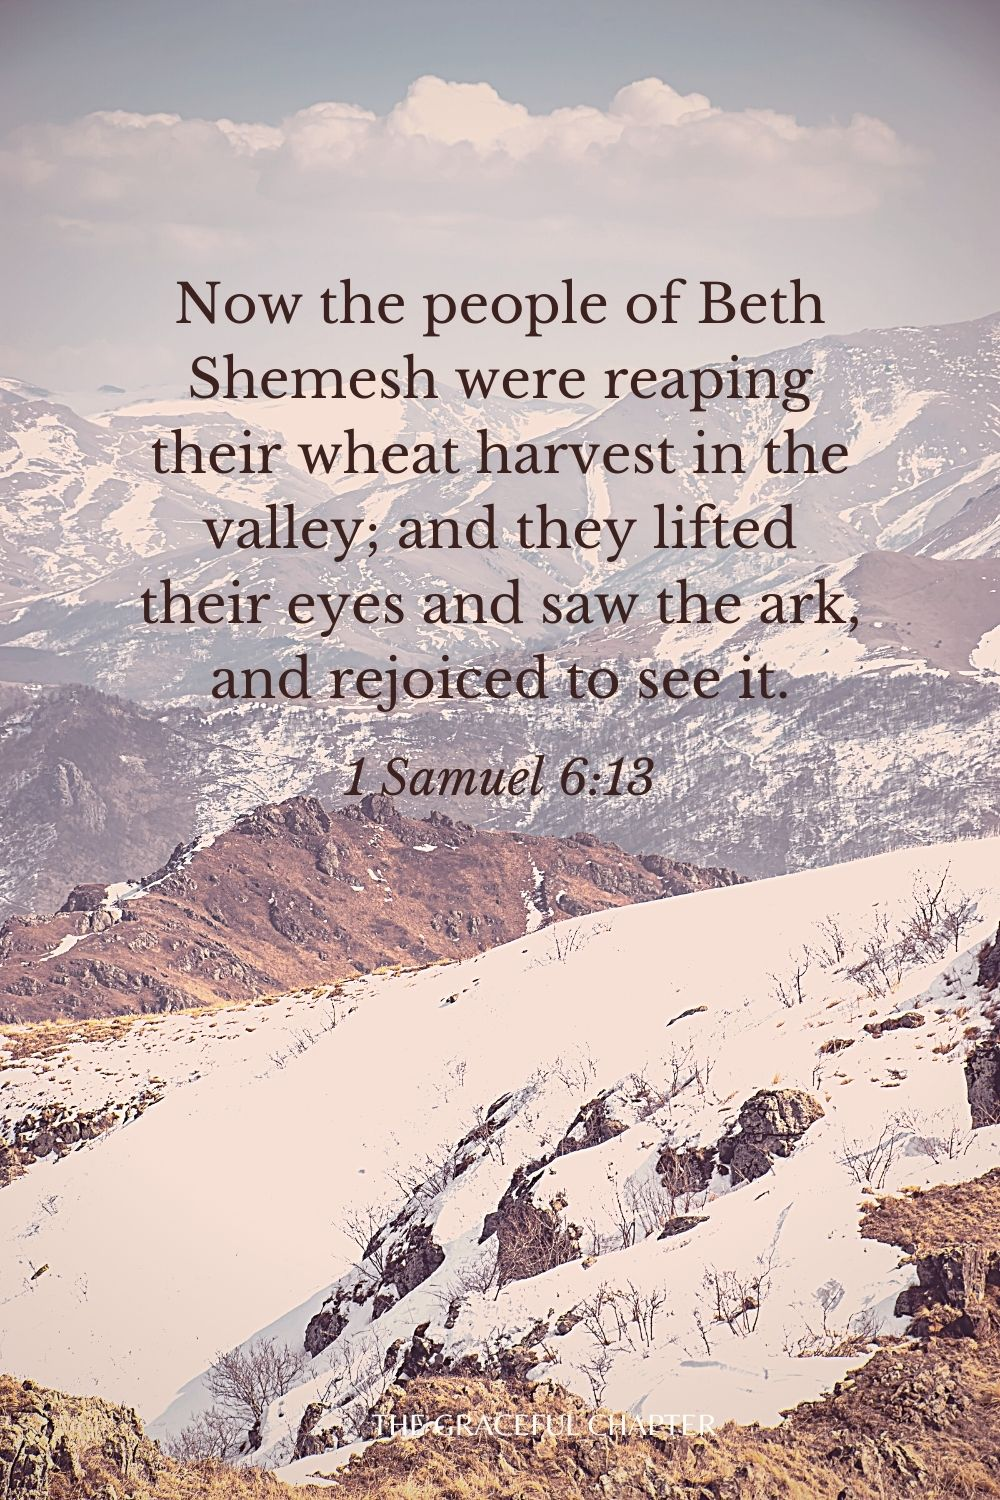 Now the people of Beth Shemesh were reaping their wheat harvest in the valley; and they lifted their eyes and saw the ark, and rejoiced to see it. 1 Samuel 6:13